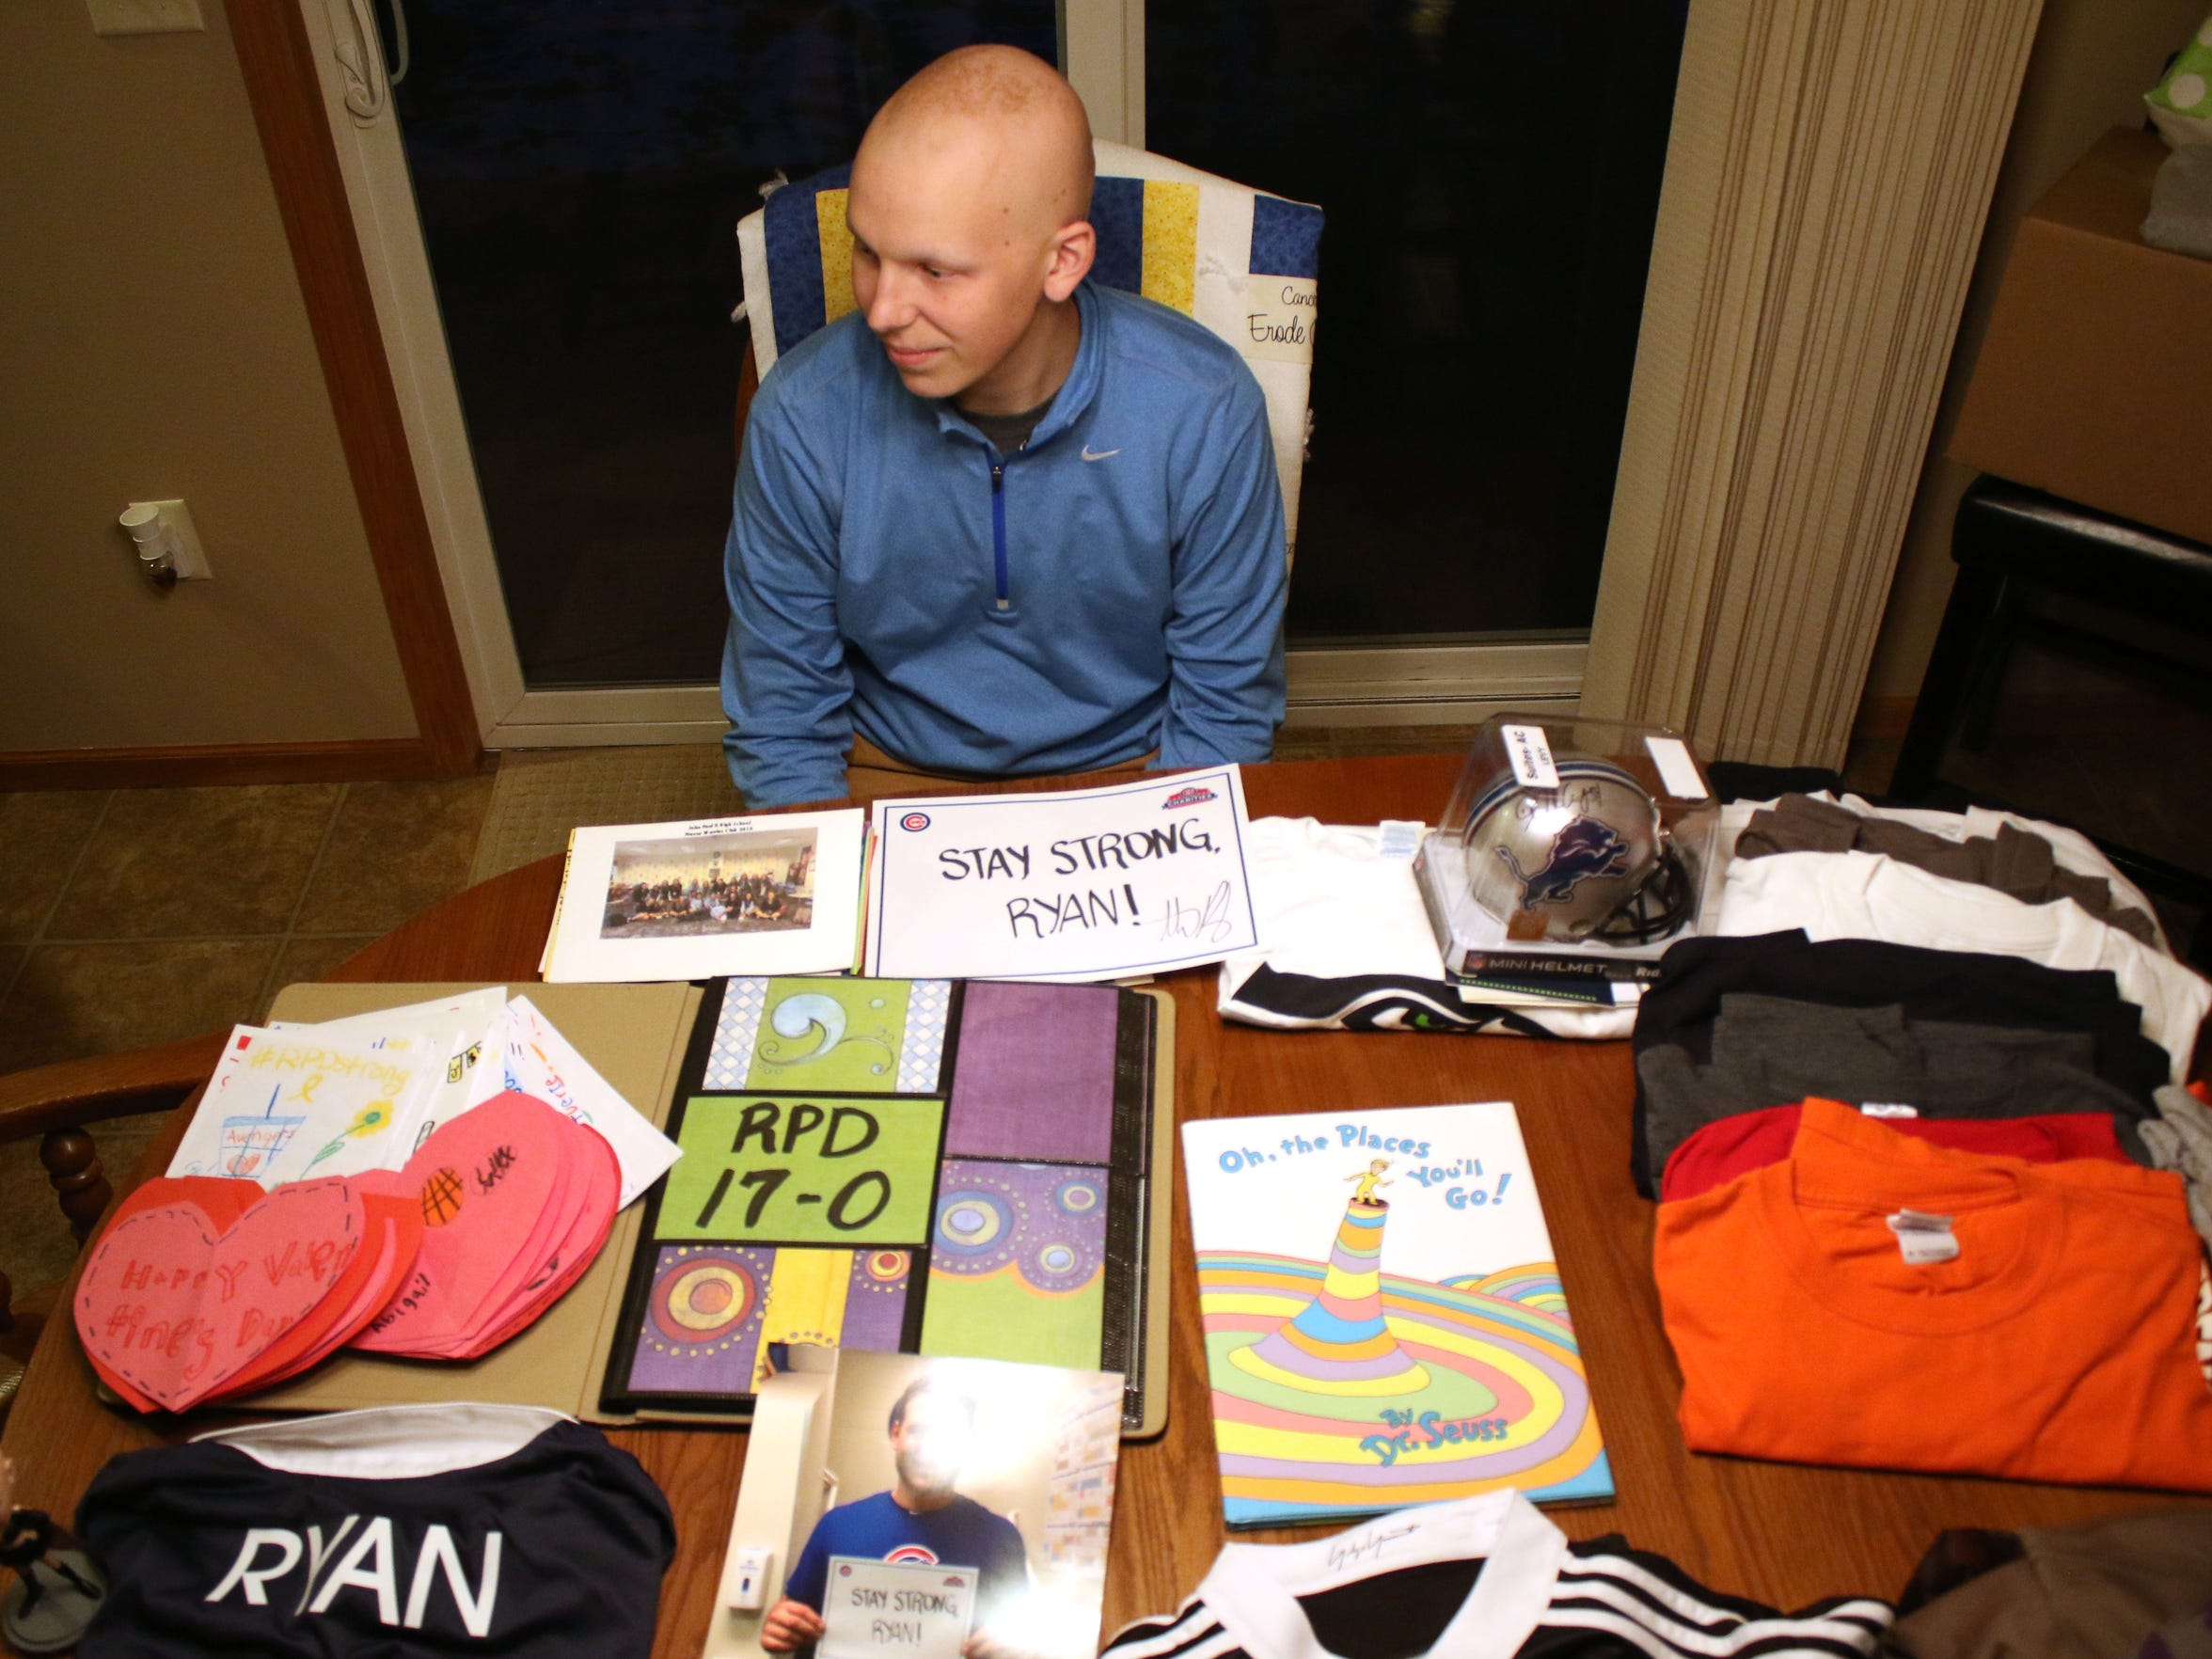 Ryan Dieringer sits at his kitchen table with a small